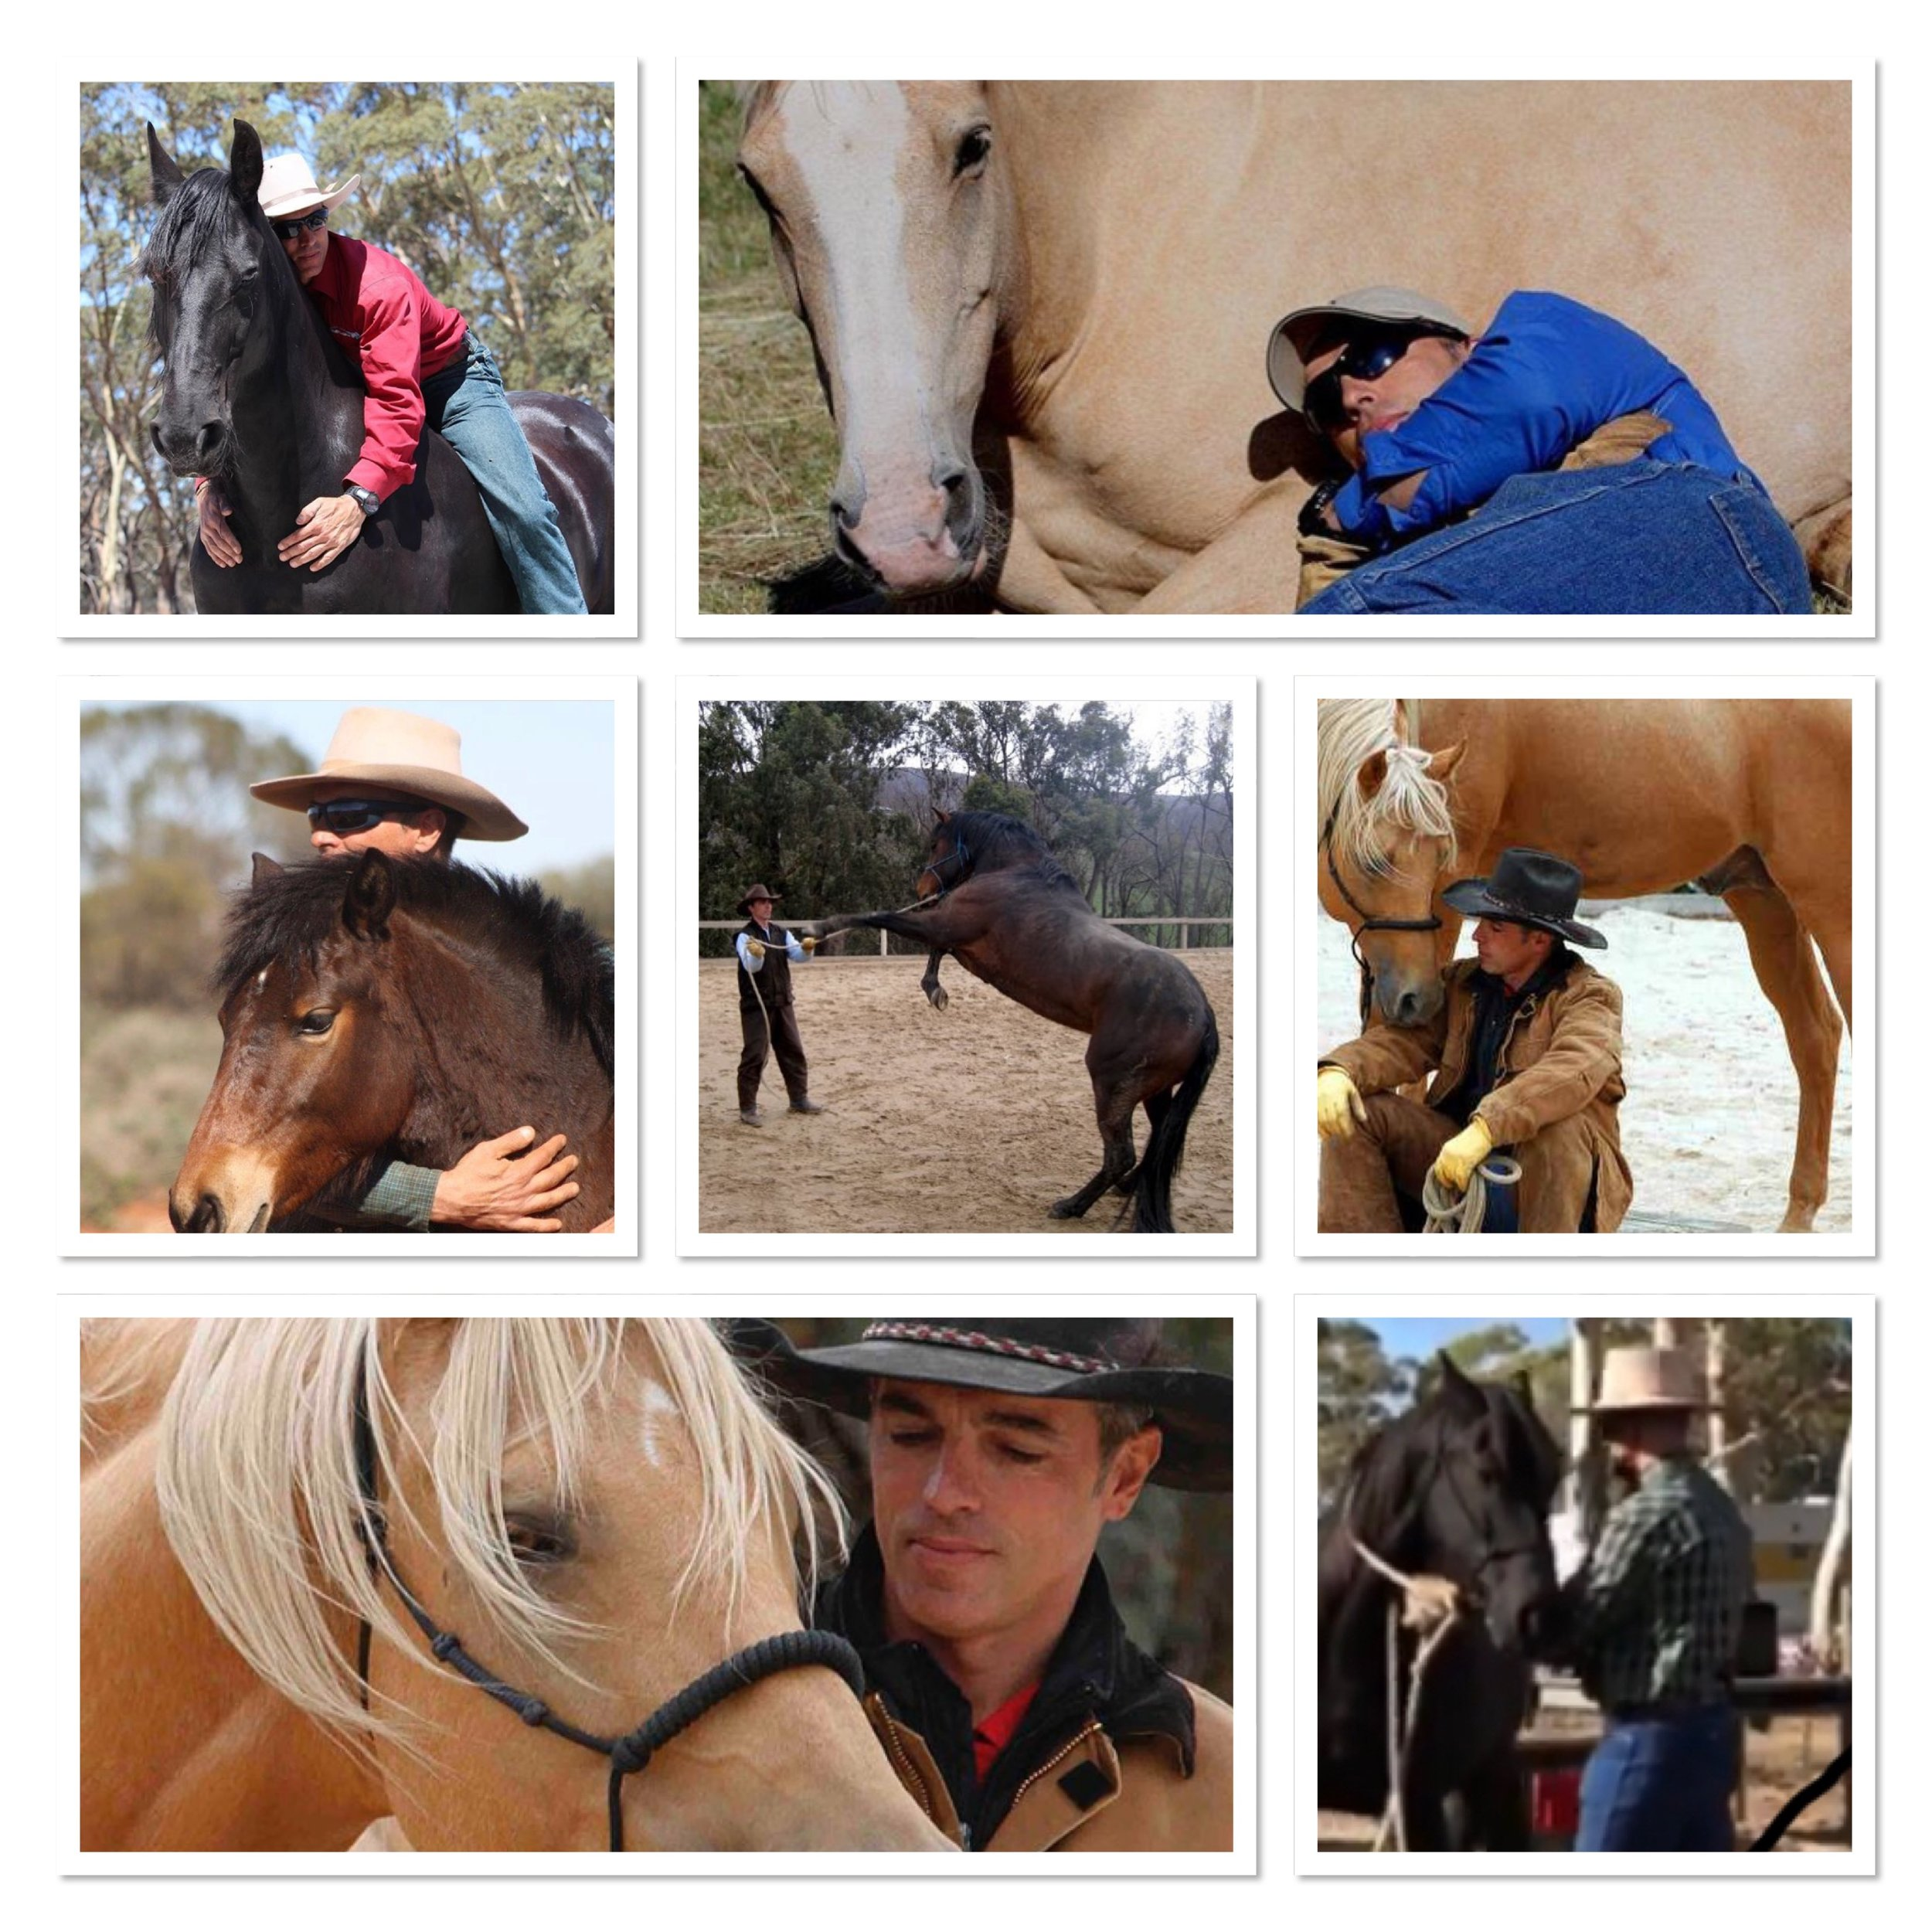 Just a few of the moments captured between Carlos and the different horses he works with. Source: Carlos's Instagram feed.